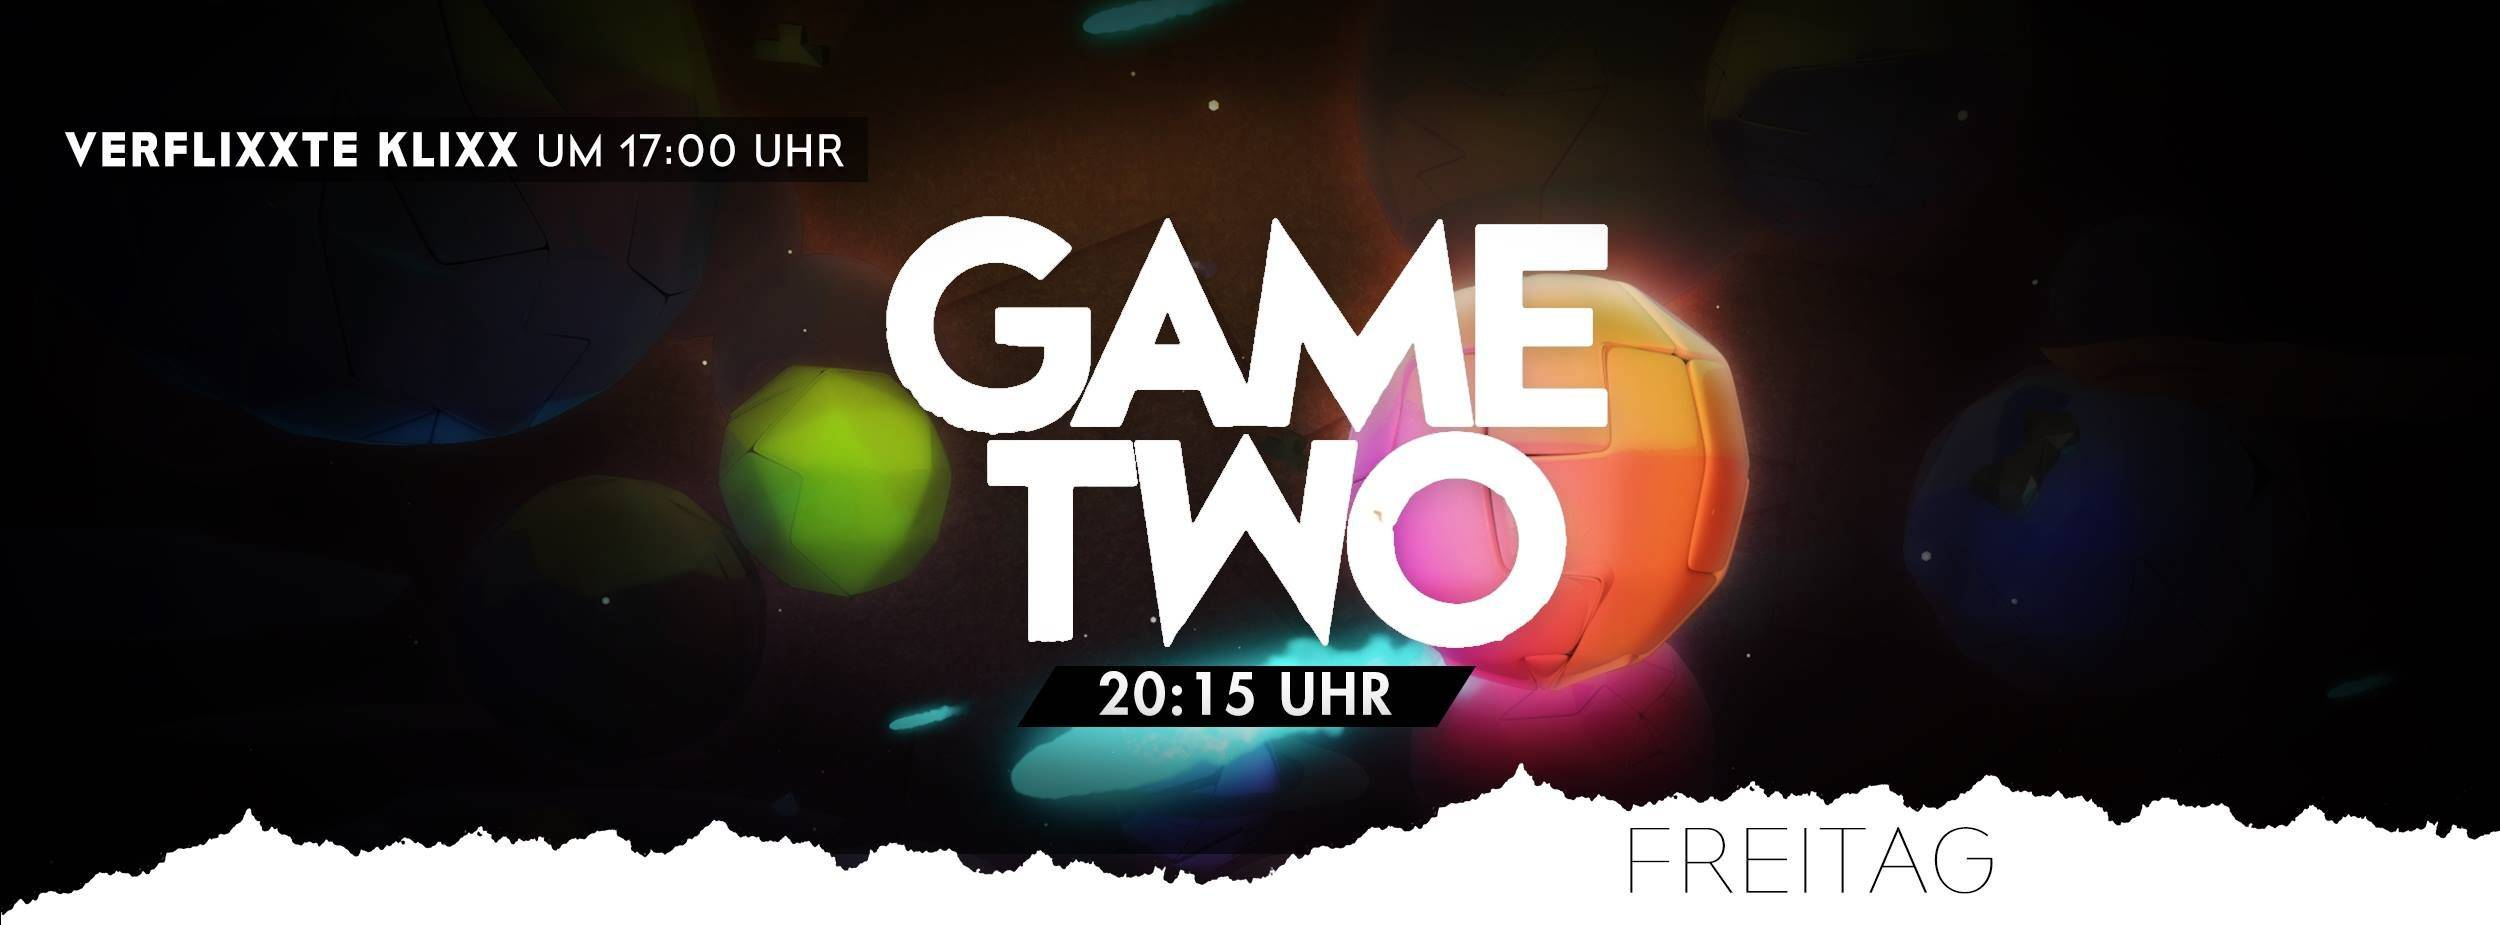 RocketbeansTV: Game One kehrt als Game Two zurück!